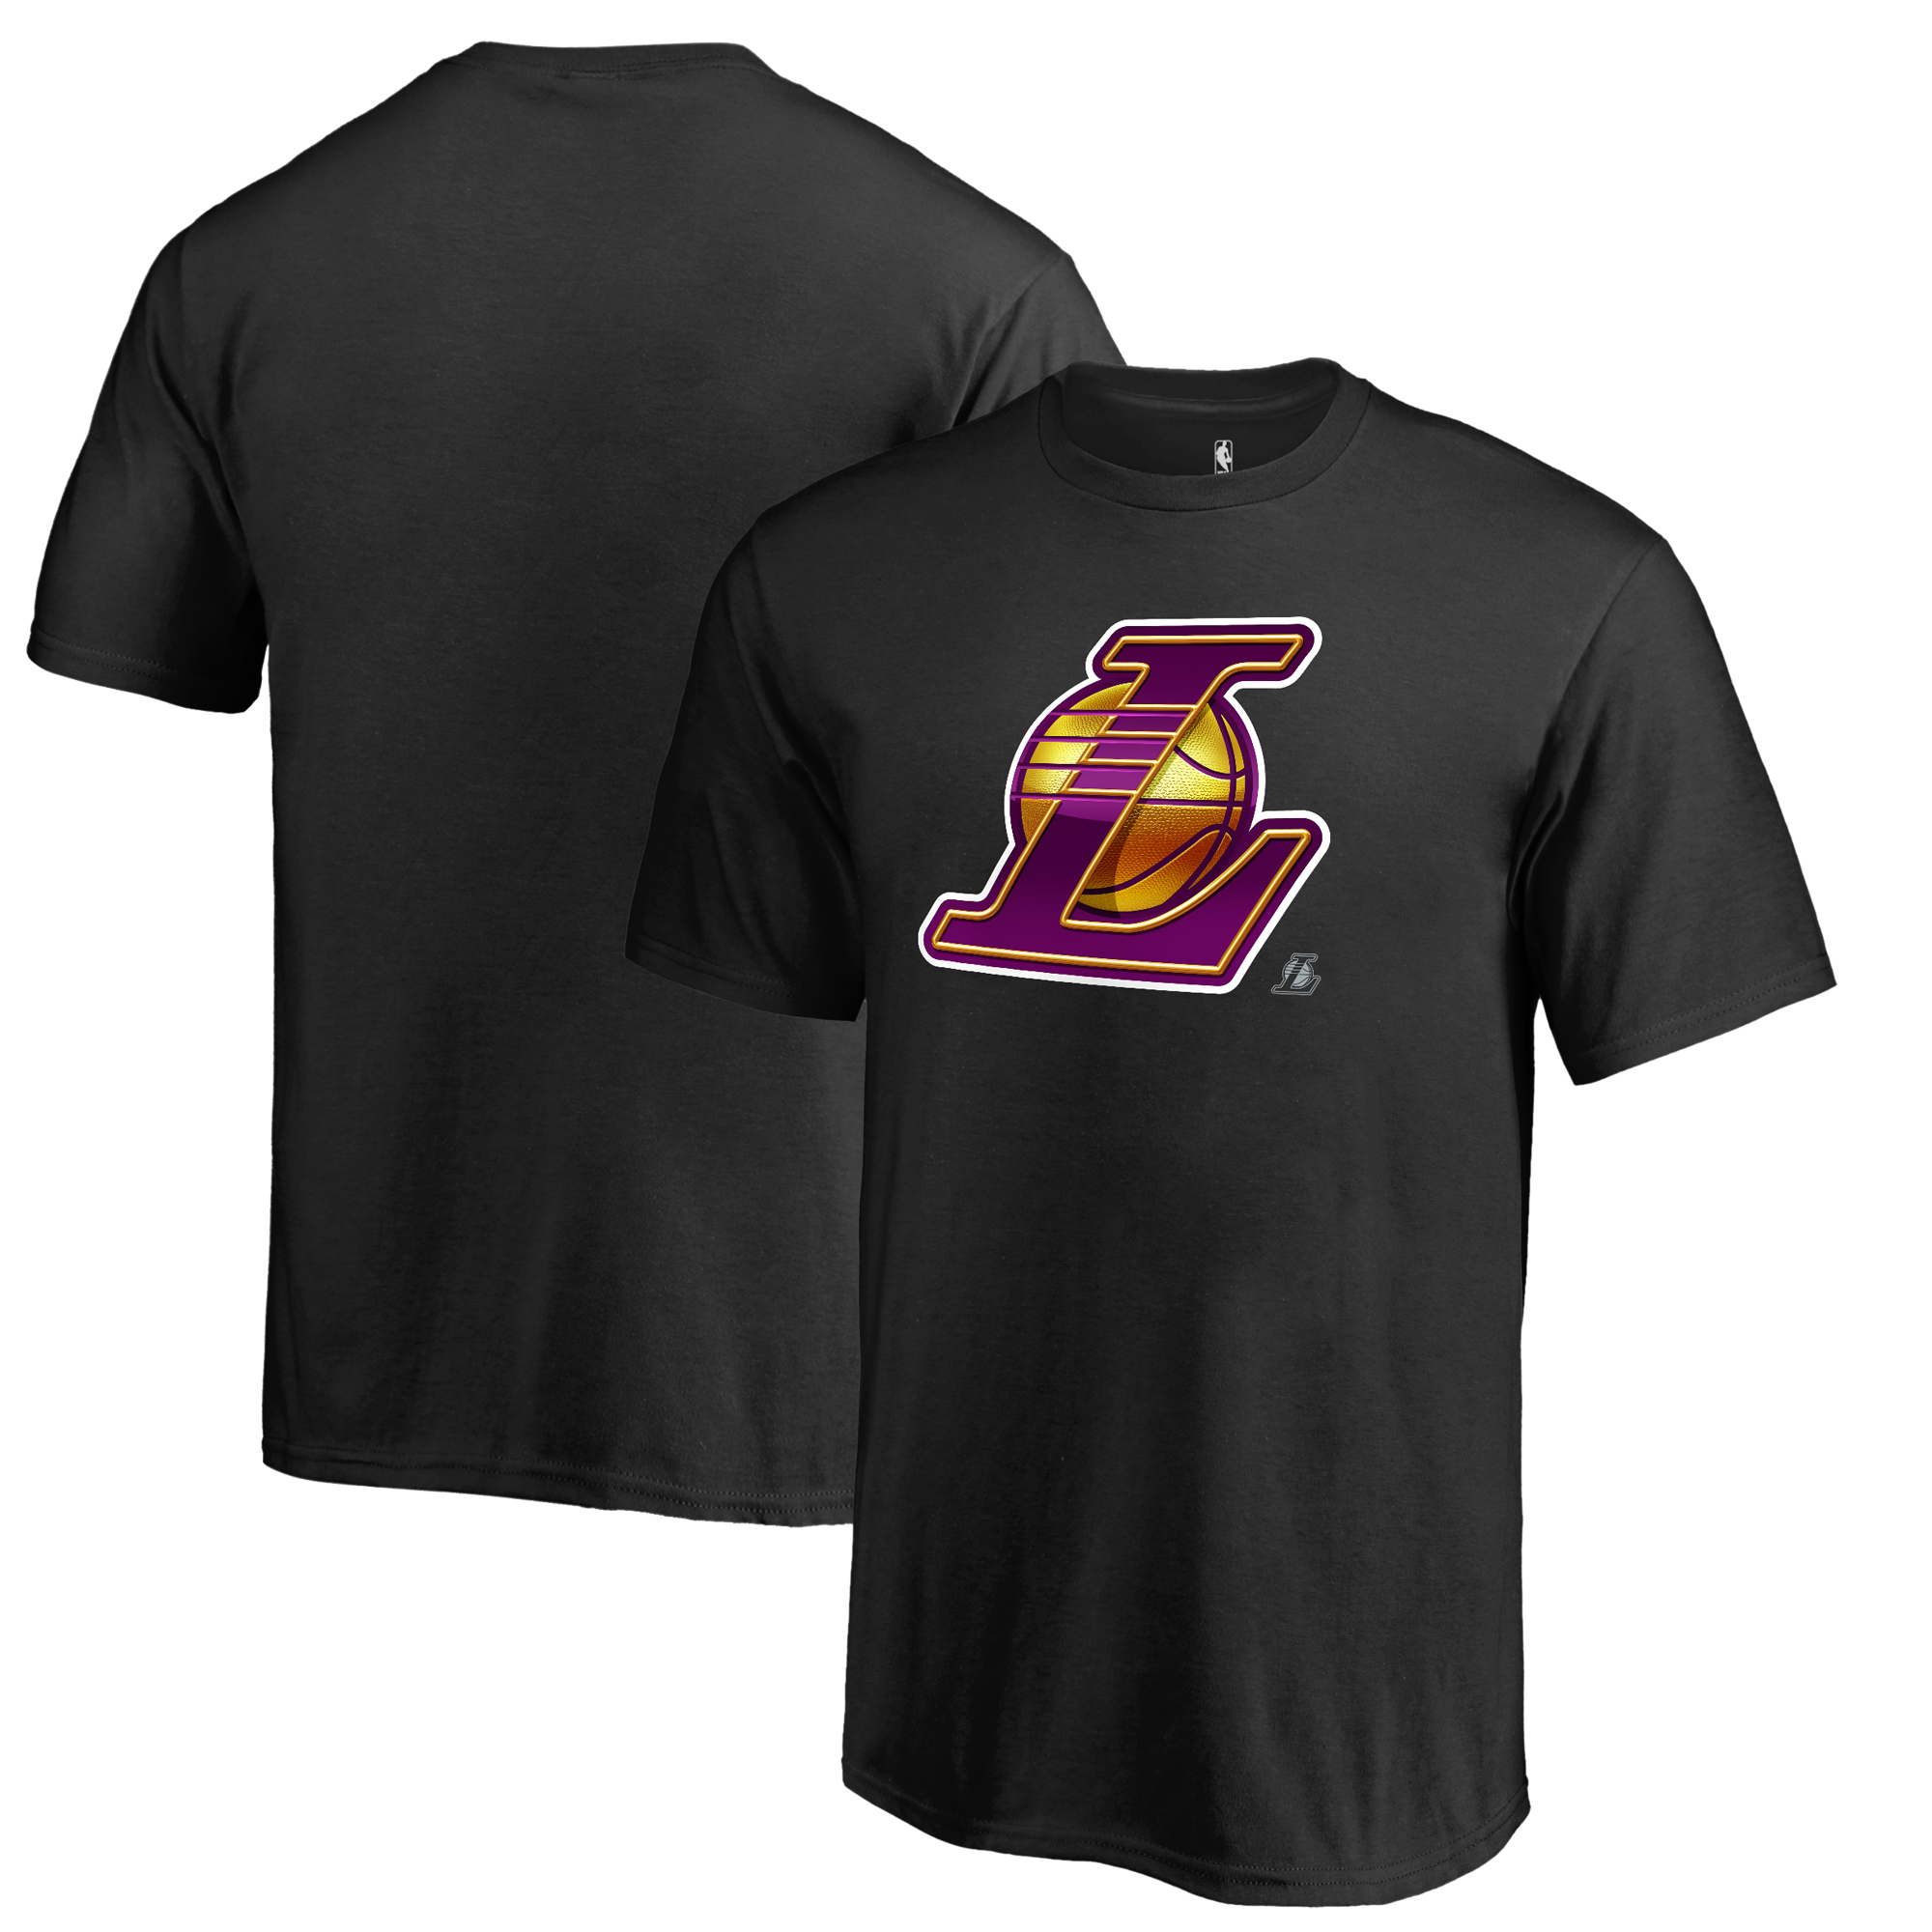 Los Angeles Lakers Fanatics Branded Youth Midnight Mascot T-Shirt - Black